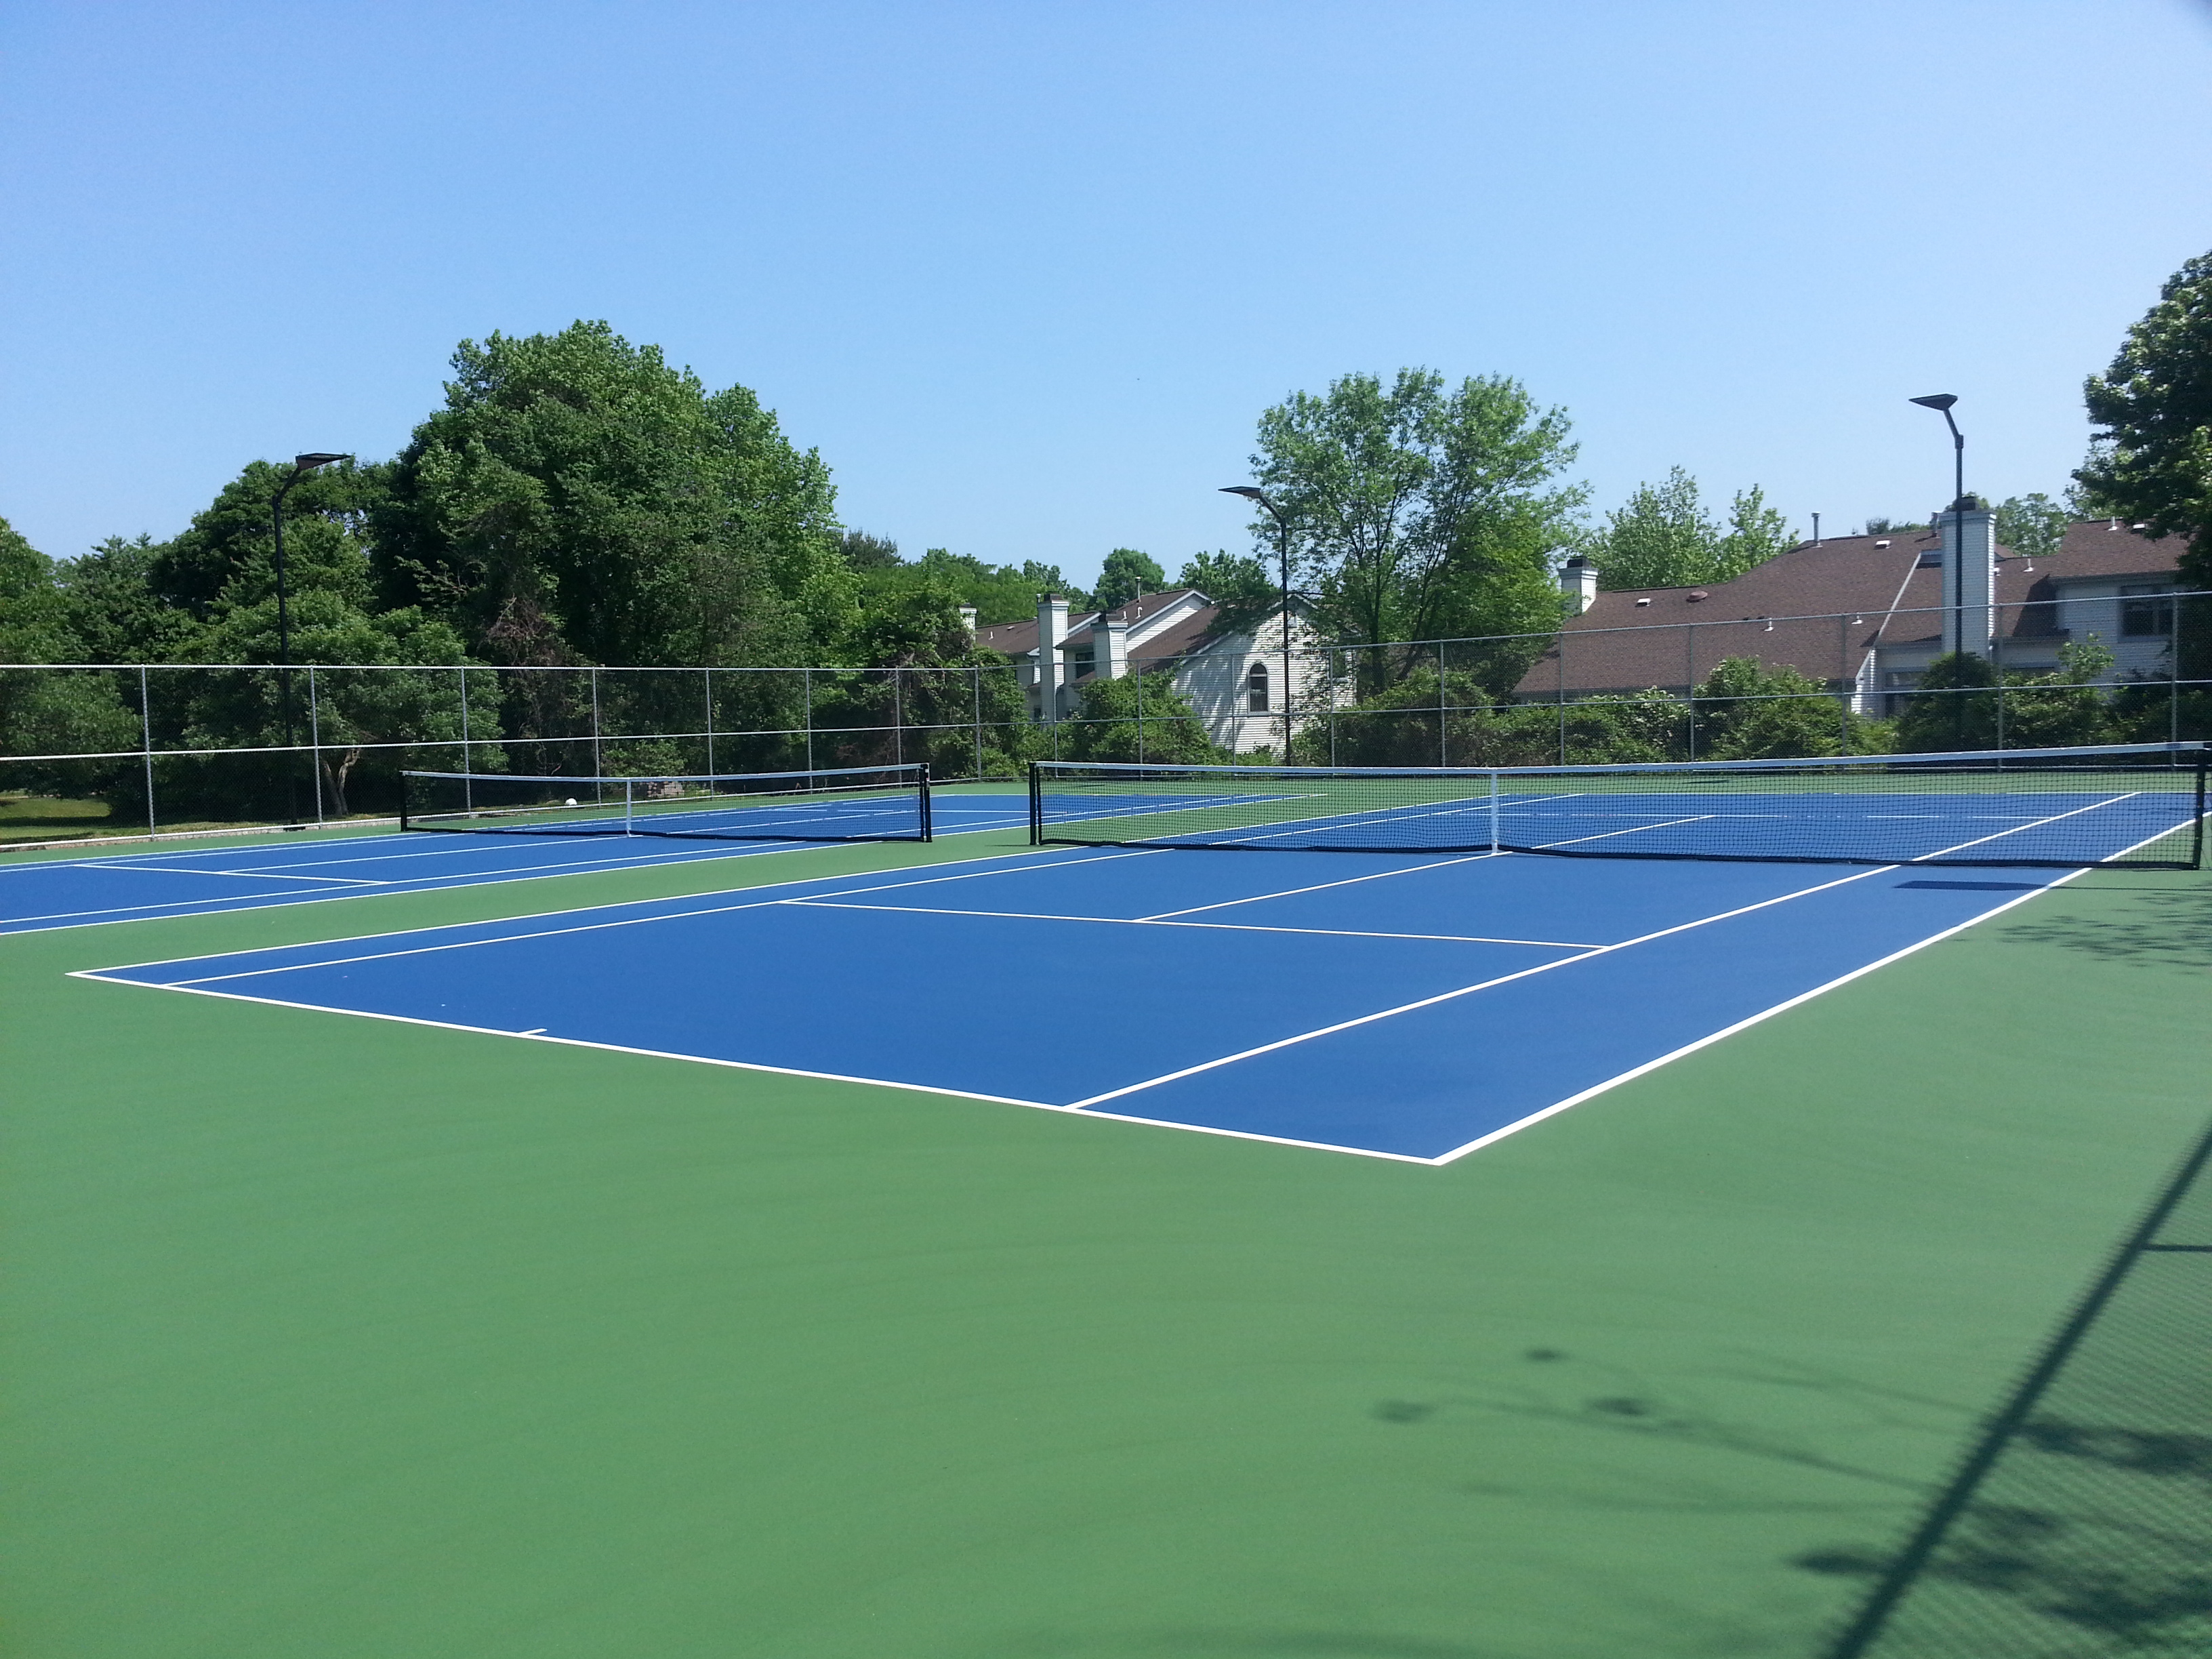 The Manor at Wayside in Ocean has two tennis courts.